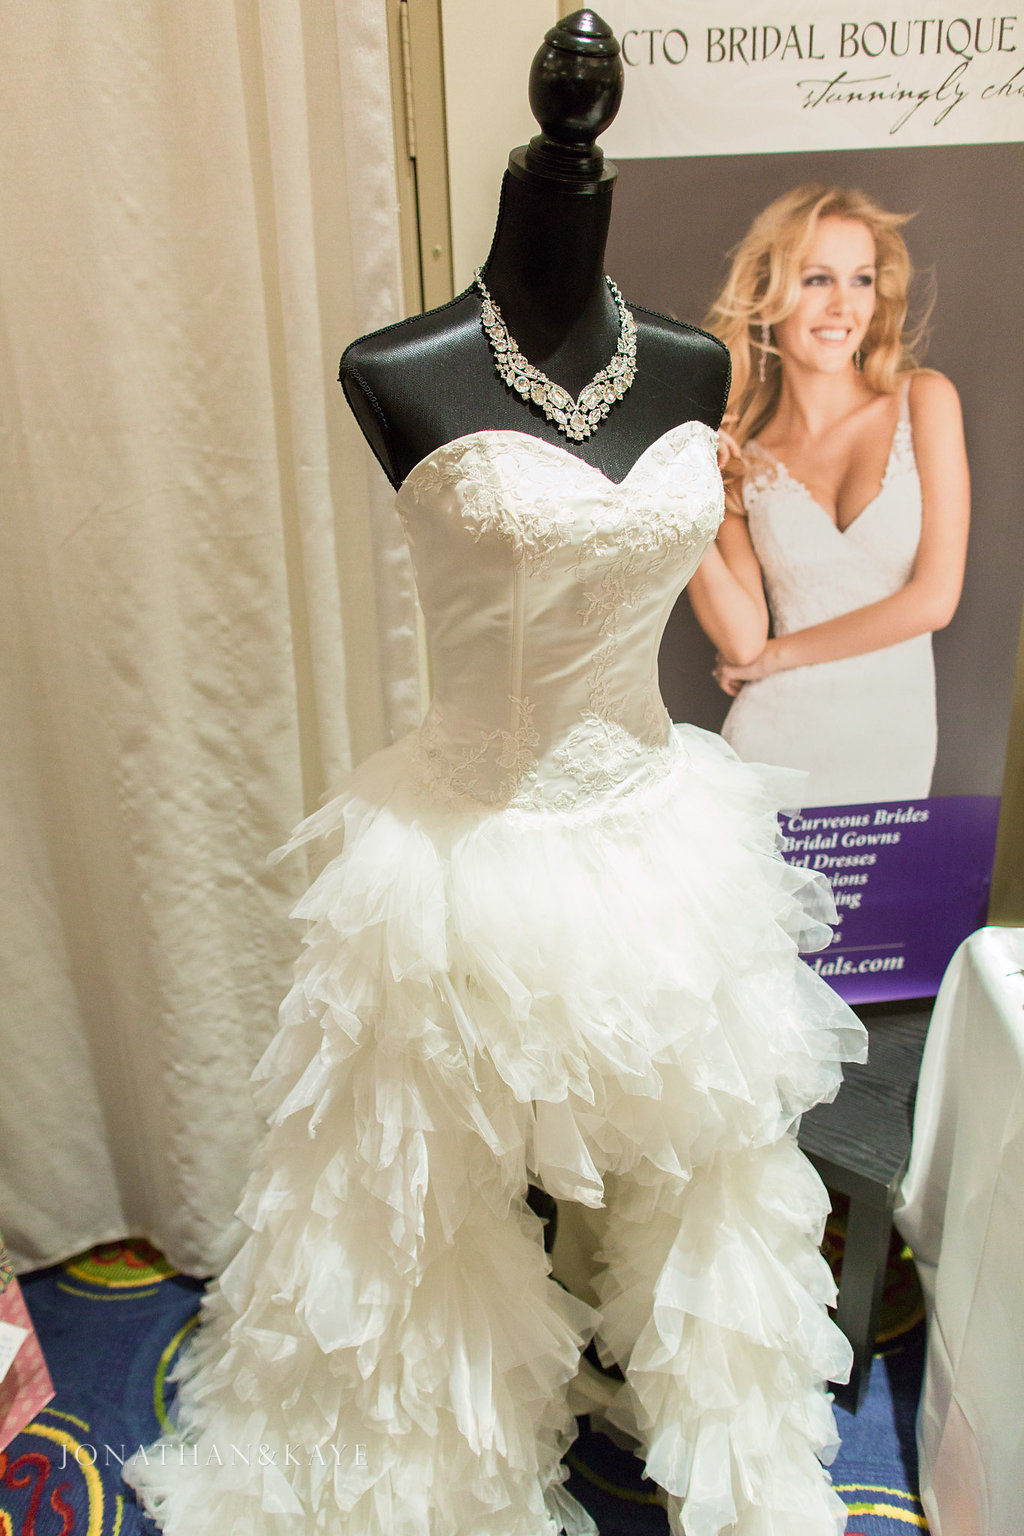 "A gorgeous gown for the ""Fashionista Bride"" from CTO Bridal Boutique, photography provided by Jonathan & Kaye Photography"